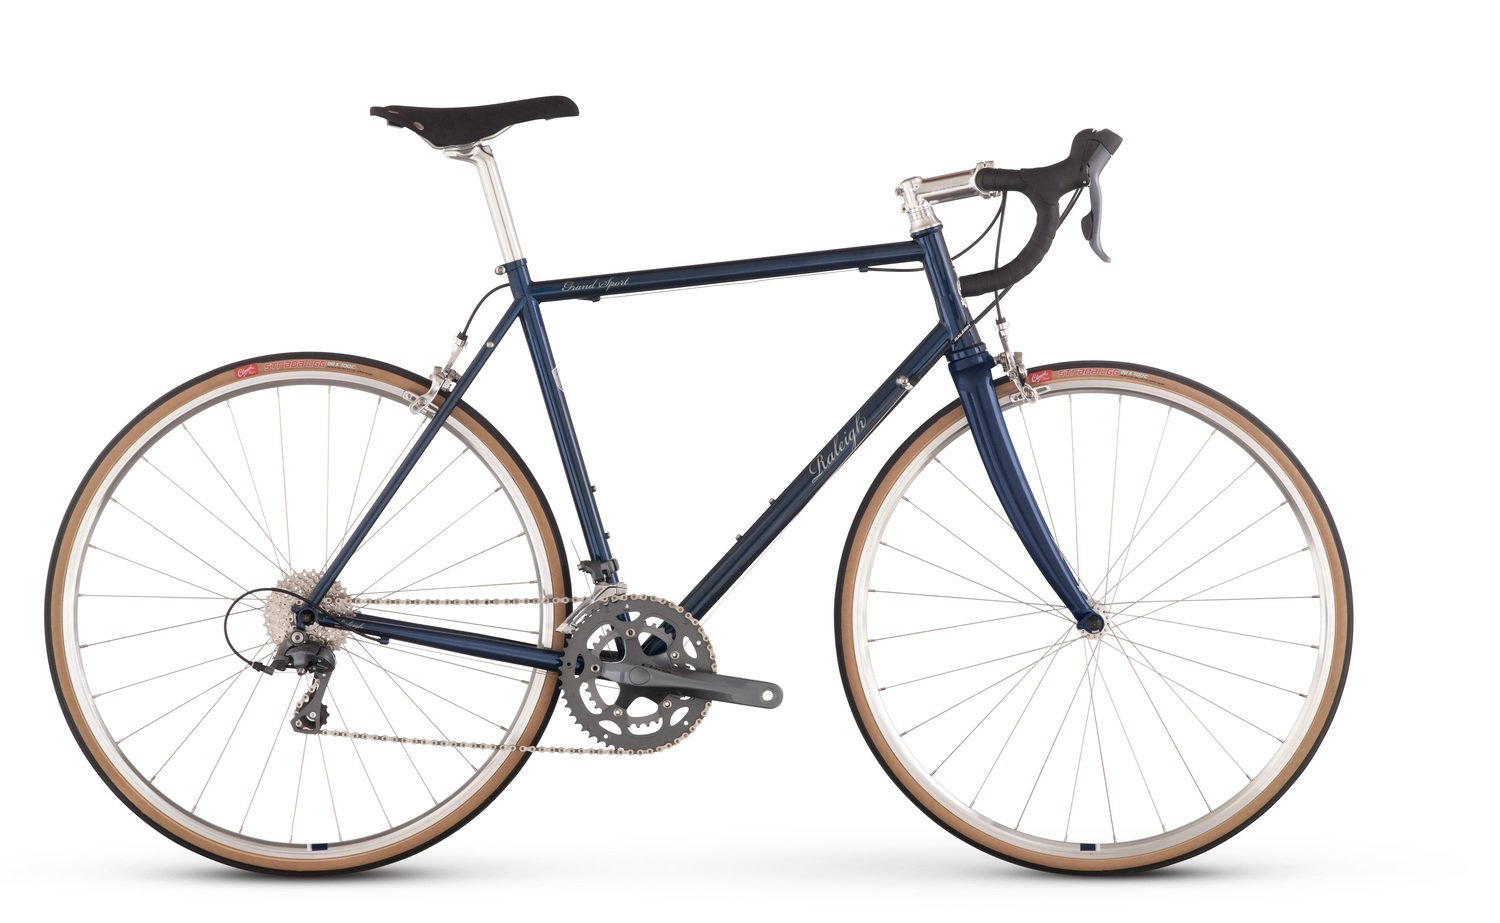 Rider's Choice | Best Road Bikes under $1000 - The Bicycles